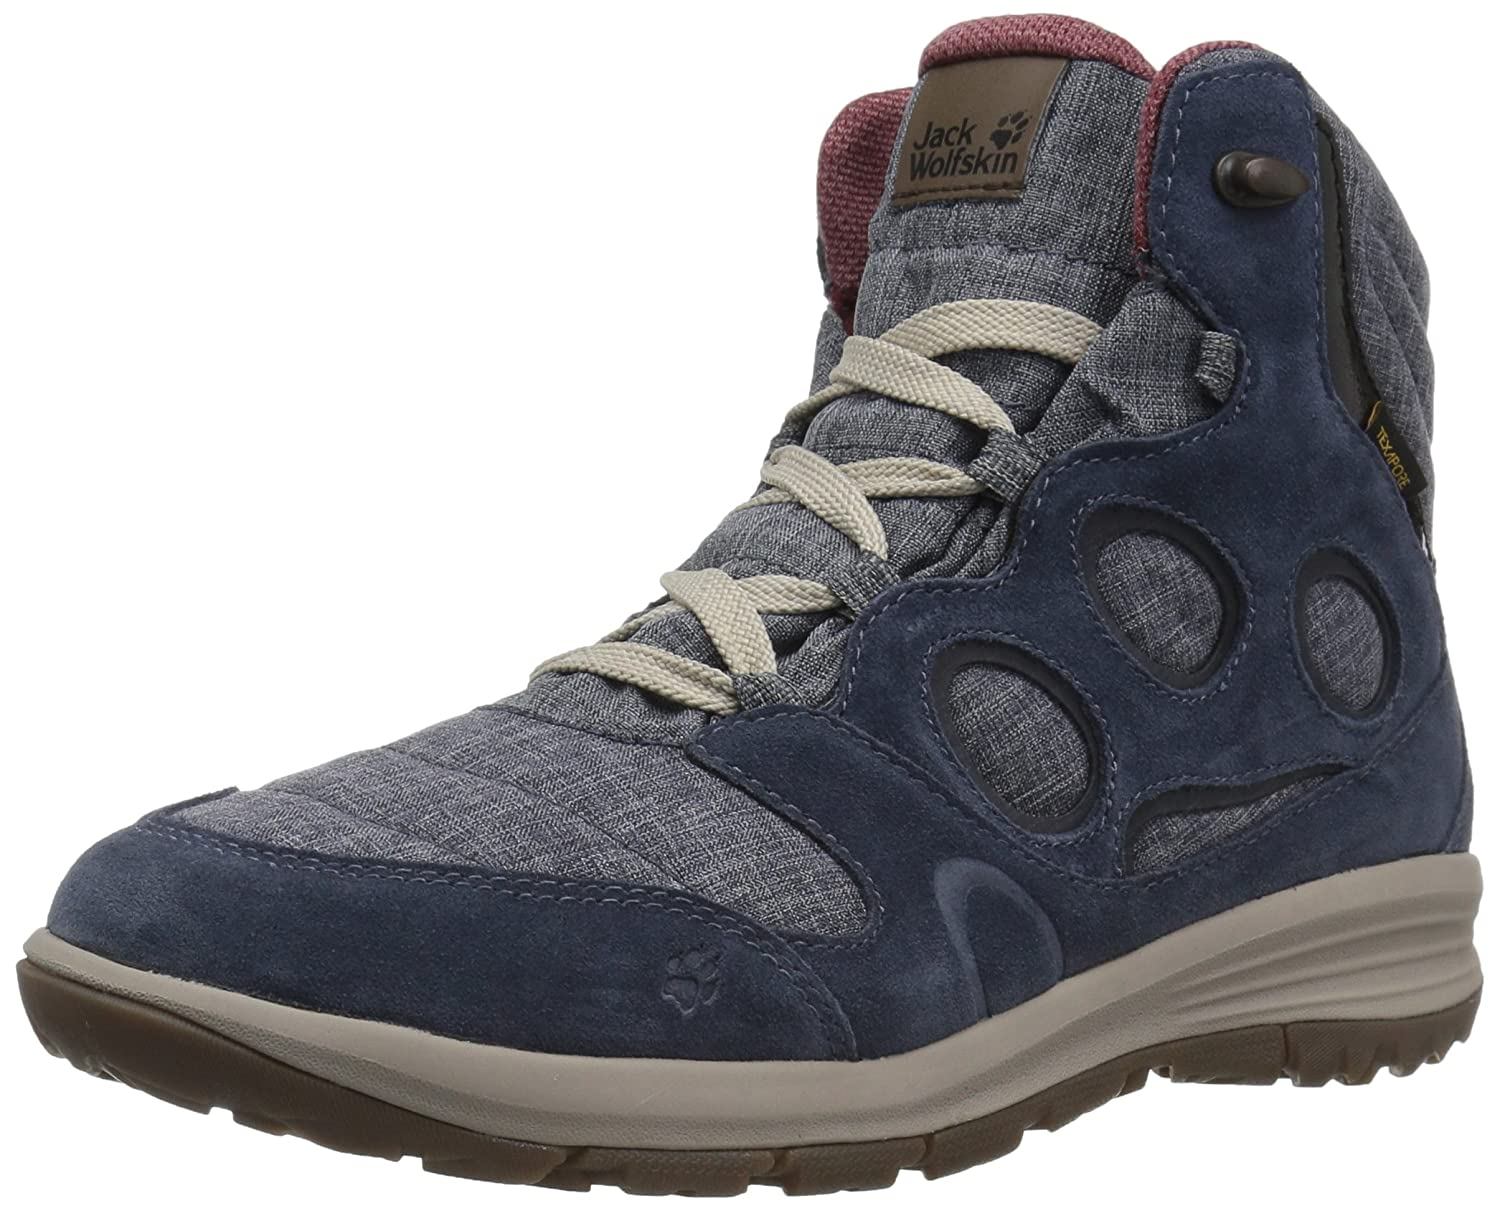 Jack Wolfskin Women's Vancouver Texapore Mid W Fashion Boot B01LBA8VRG 6.5 D US|Night Blue